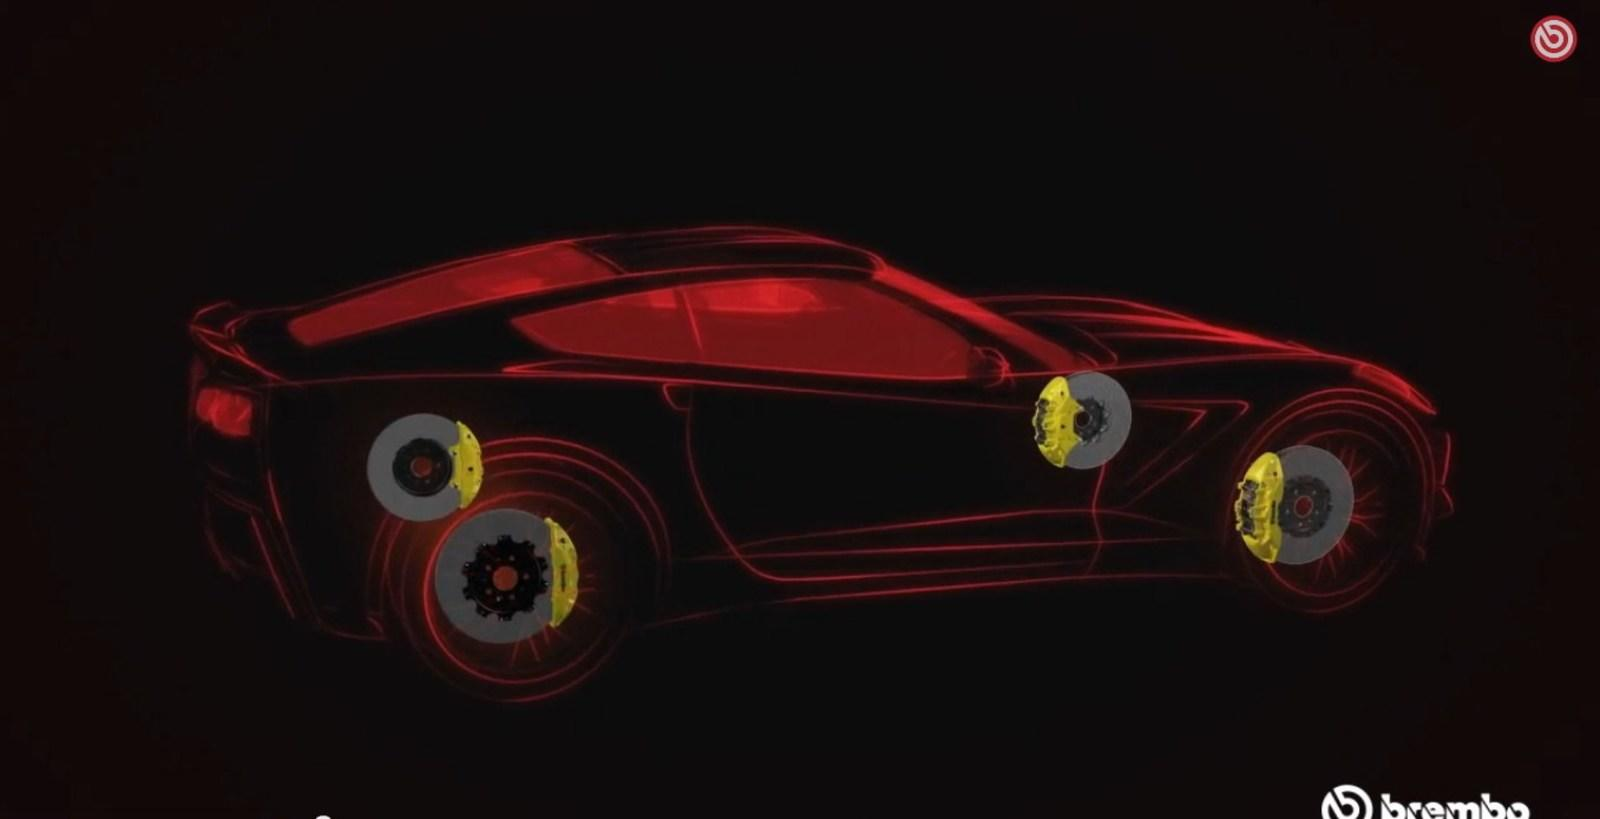 Chevrolet Corvette News And Reviews Top Speed Gm 2007 Z06 Wiring Diagrams For Dummies Video Z06s Brembo Carbon Ceramic Brakes Explained